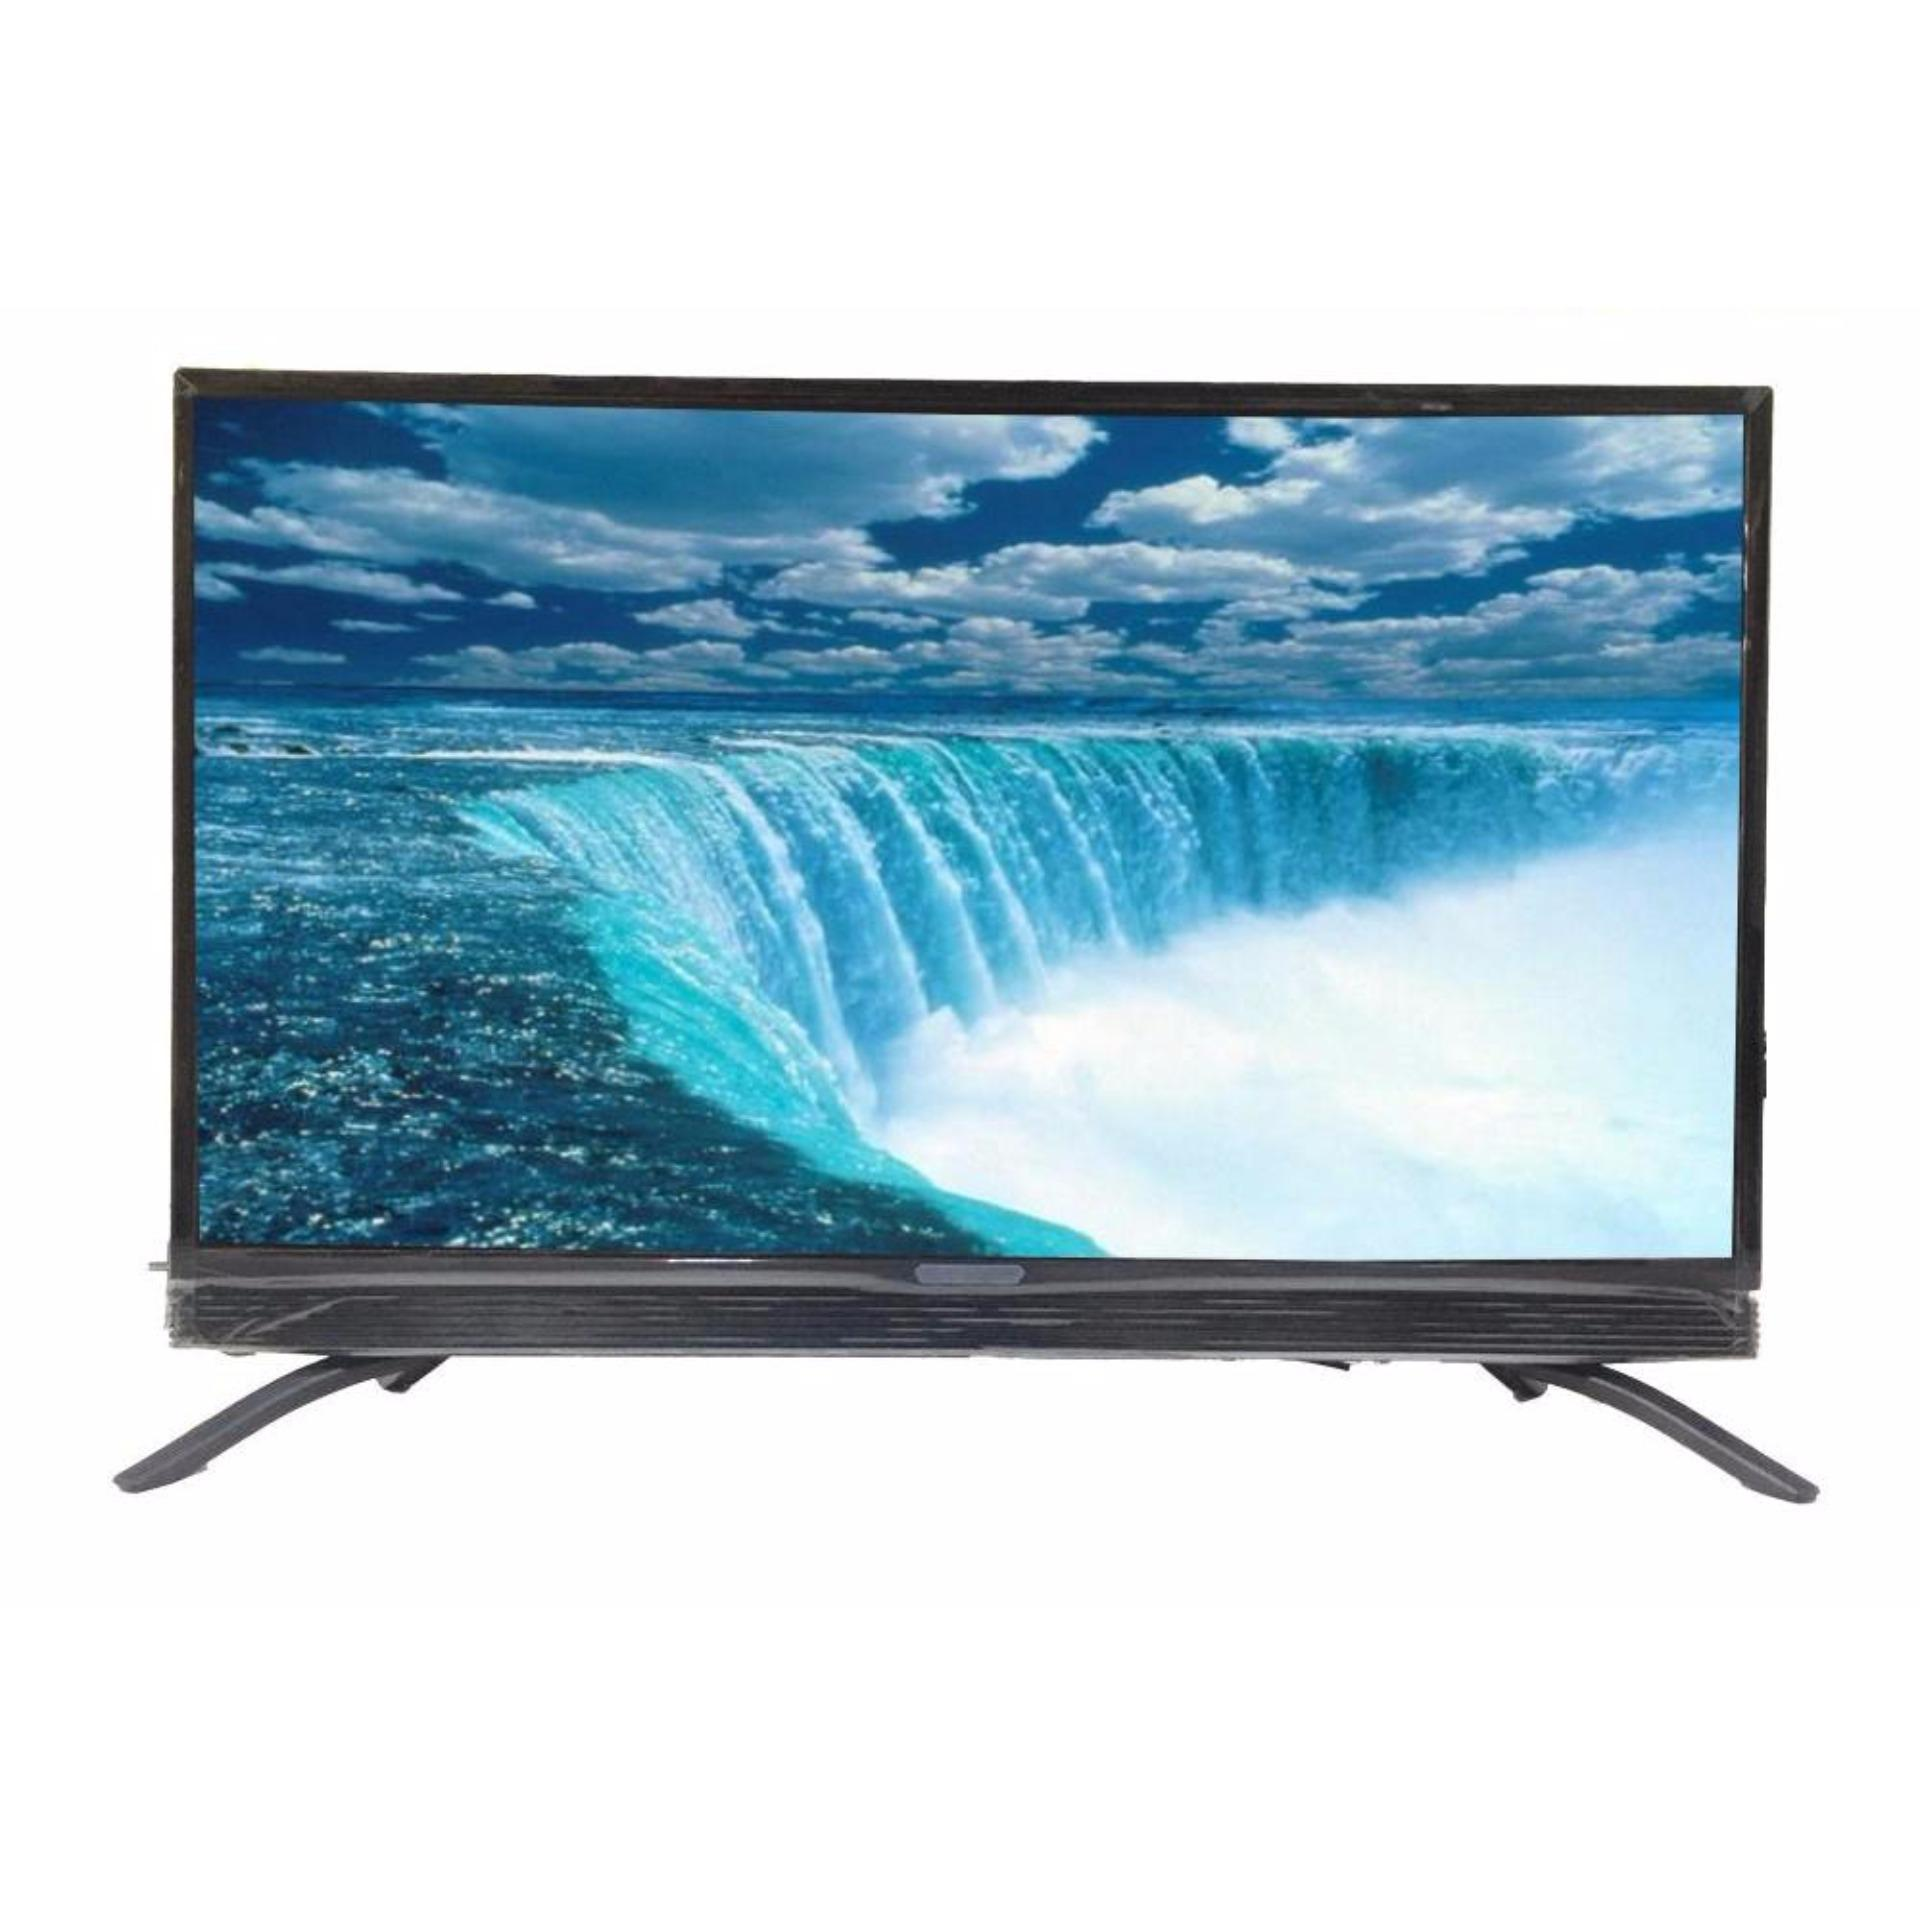 Coocaa Led TV 39 Inch 39W3 Free Bracket